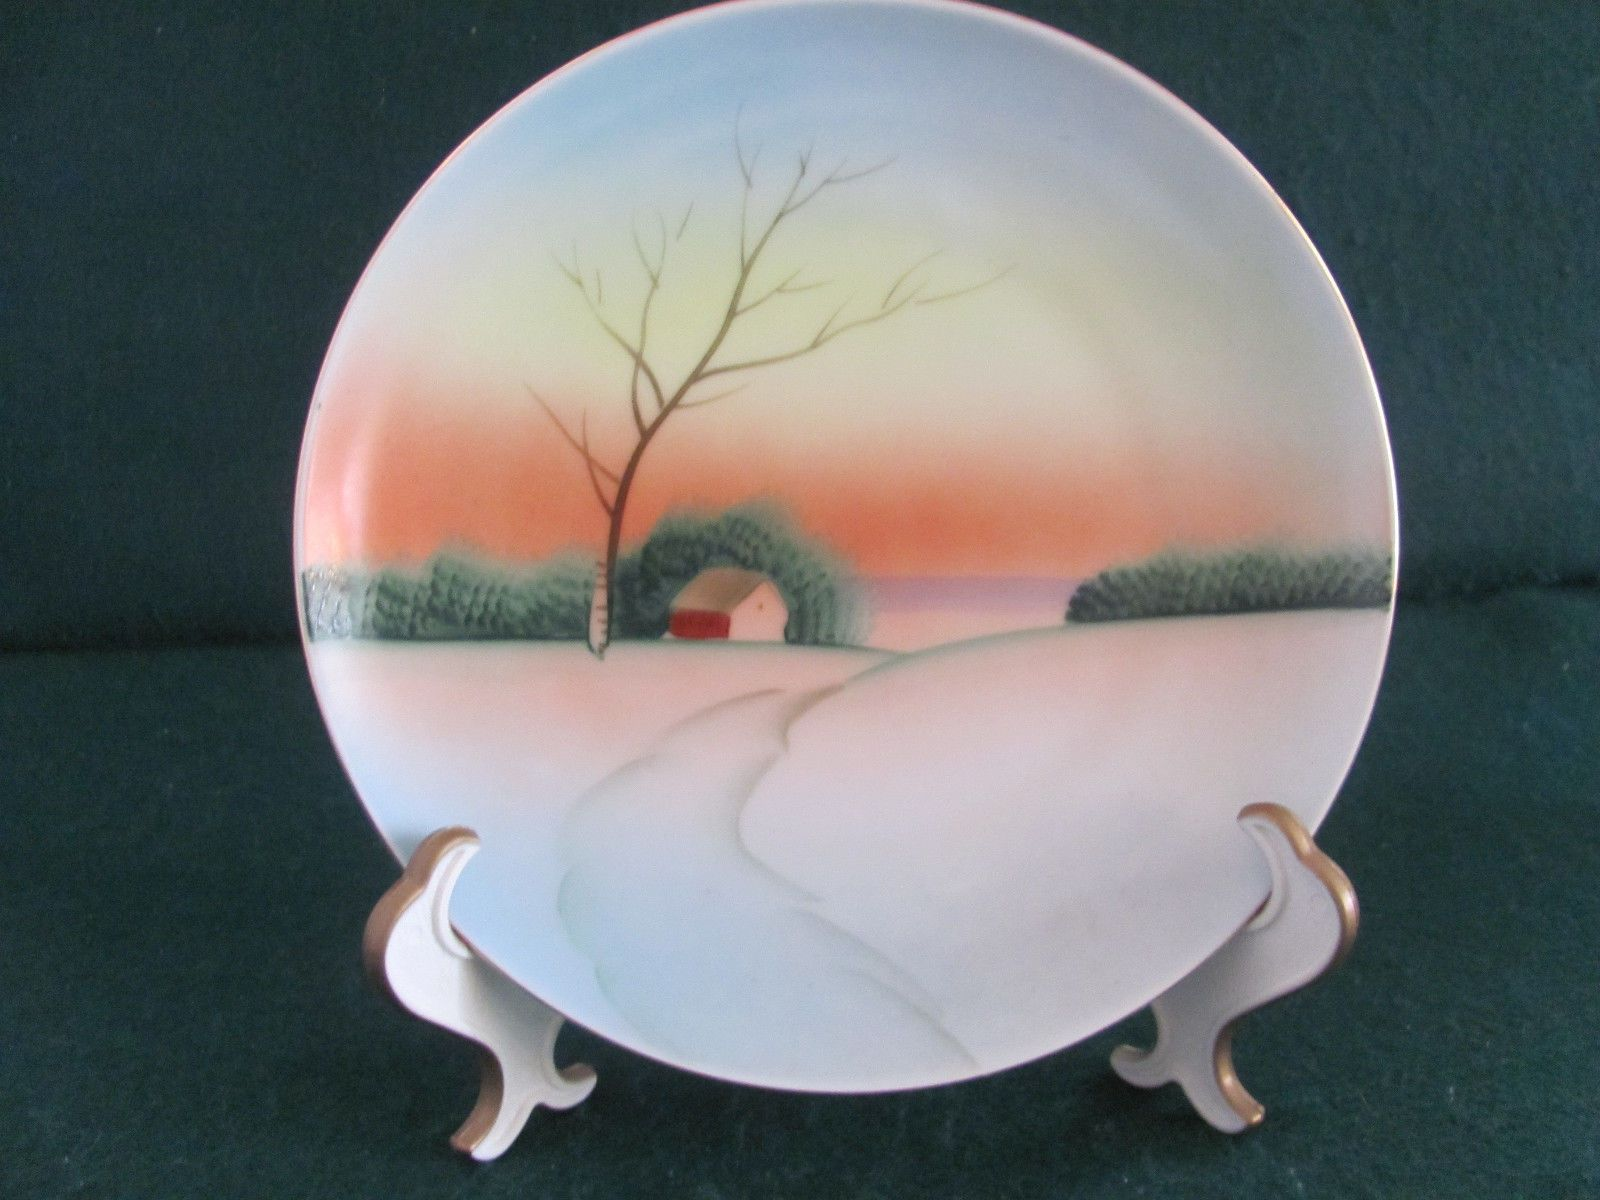 """VTG MEITO CHINA 7 1/2"""" HAND PAINTED PLATE MULTI-COLORED LANDSCAPE MADE IN JAPAN 